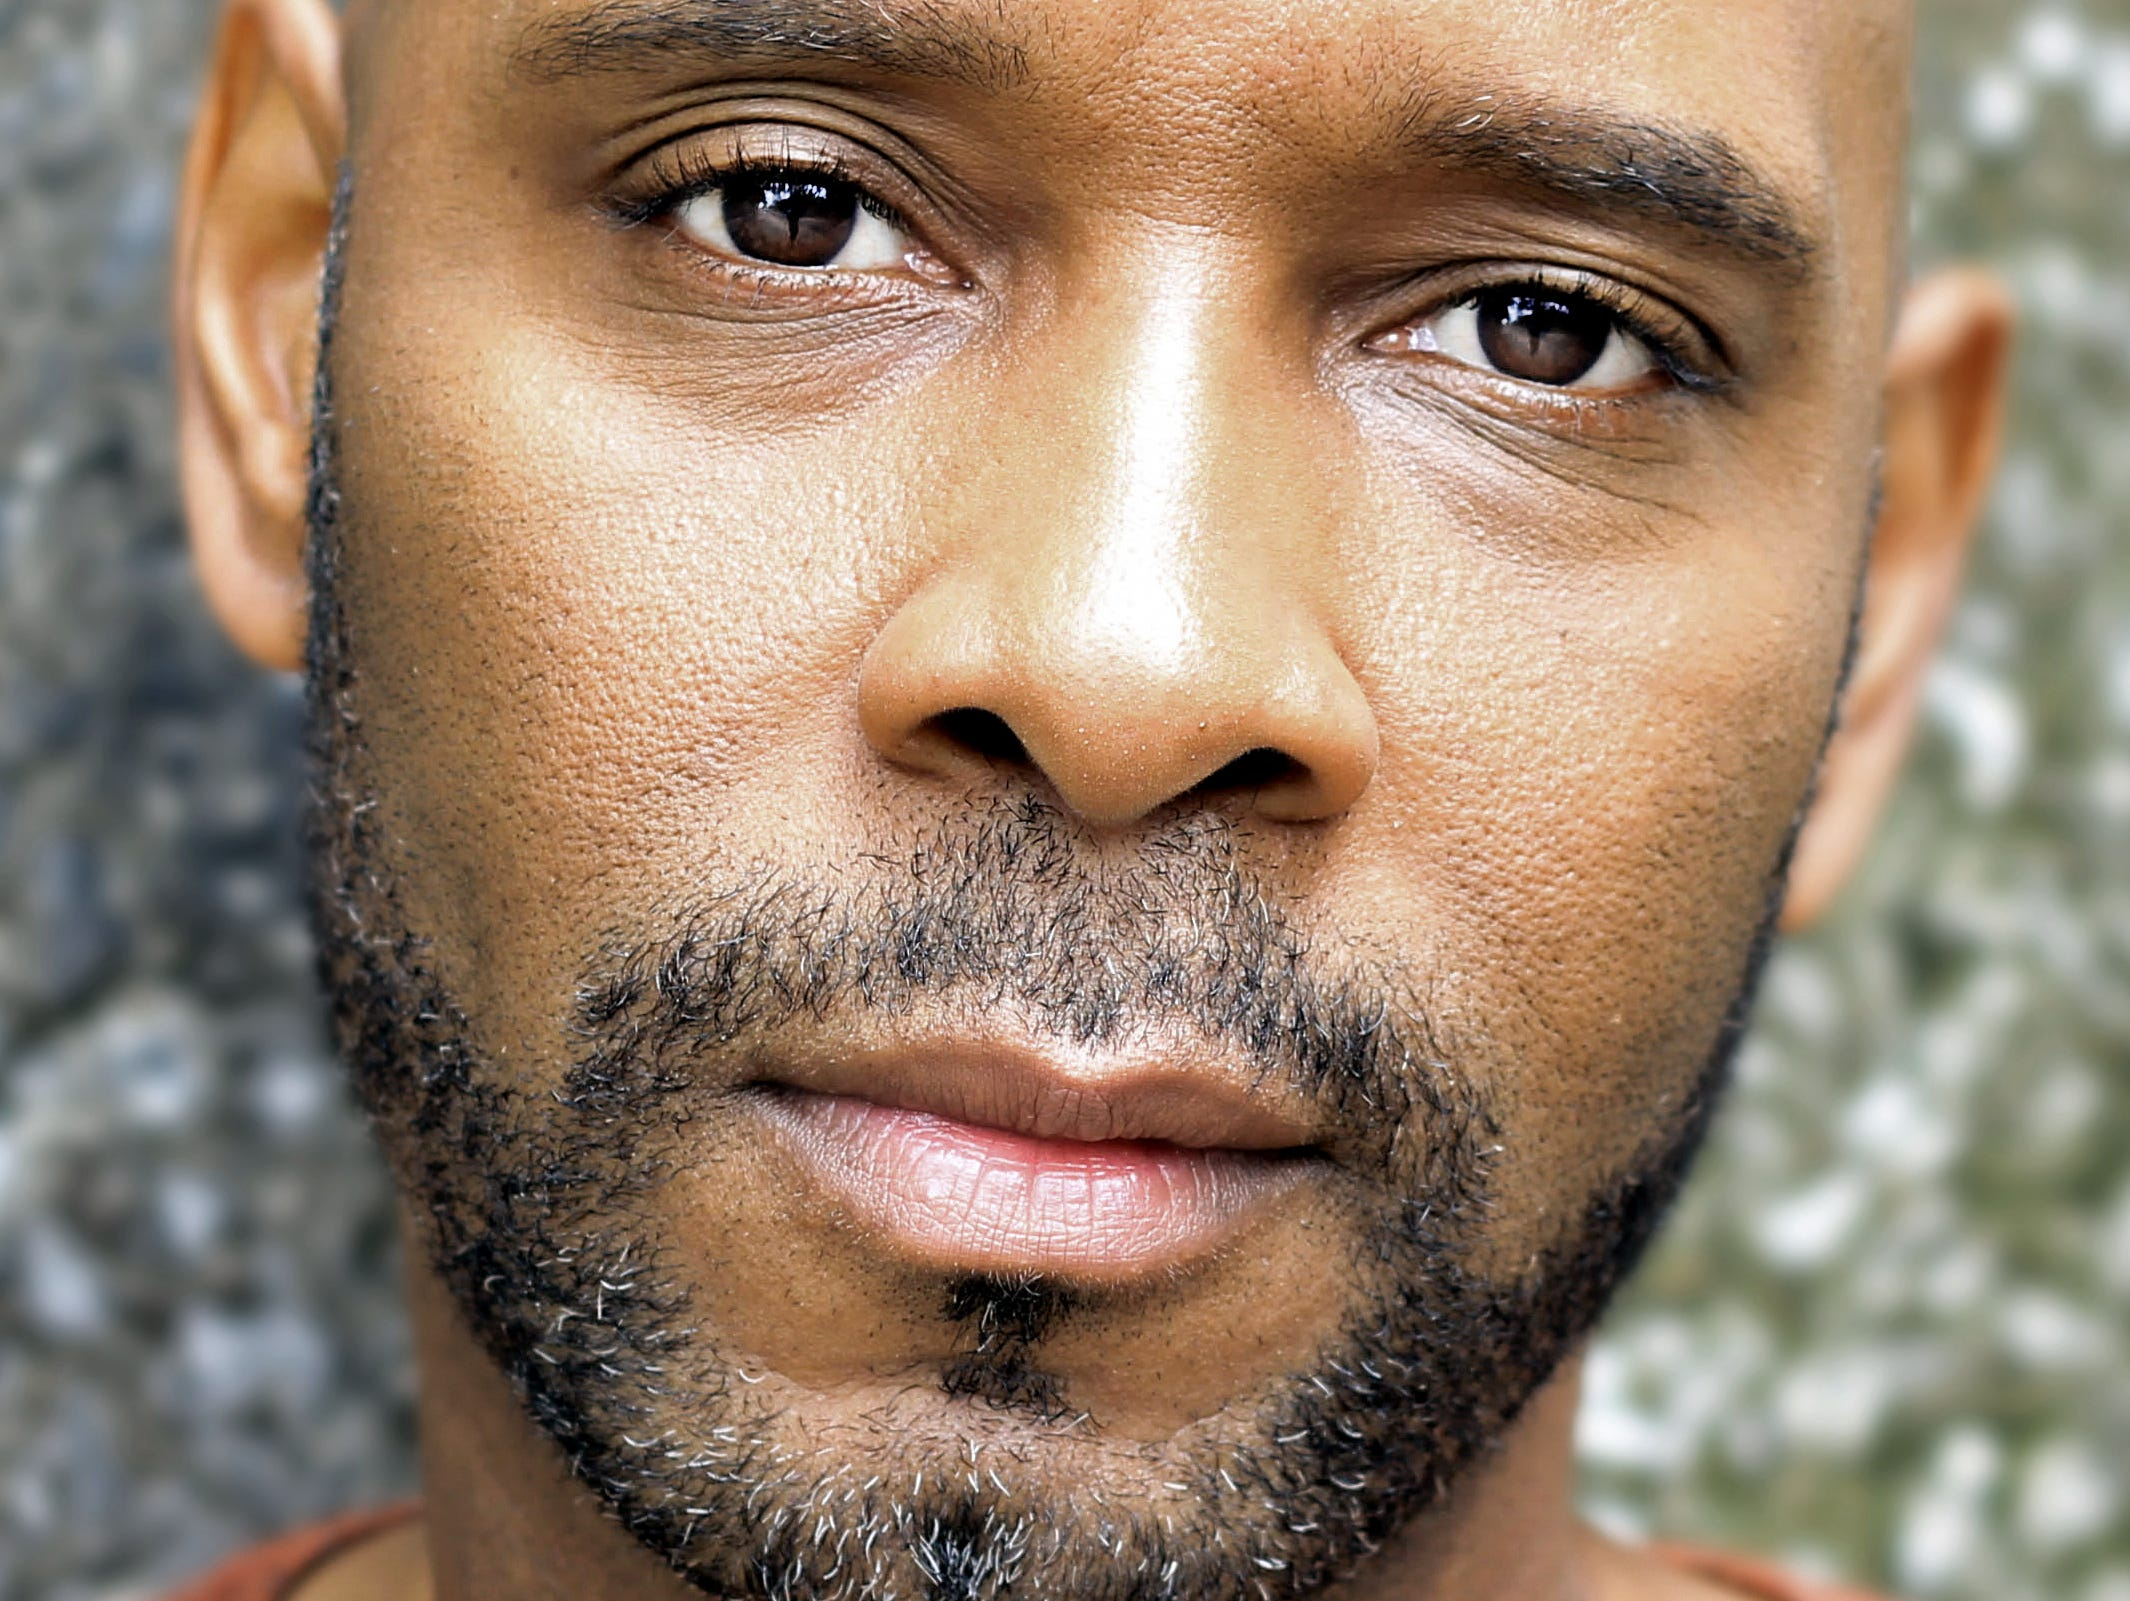 David Chattam will portray former Pearl High and Vanderbilt star Perry Wallace in a play based on Wallace's life.